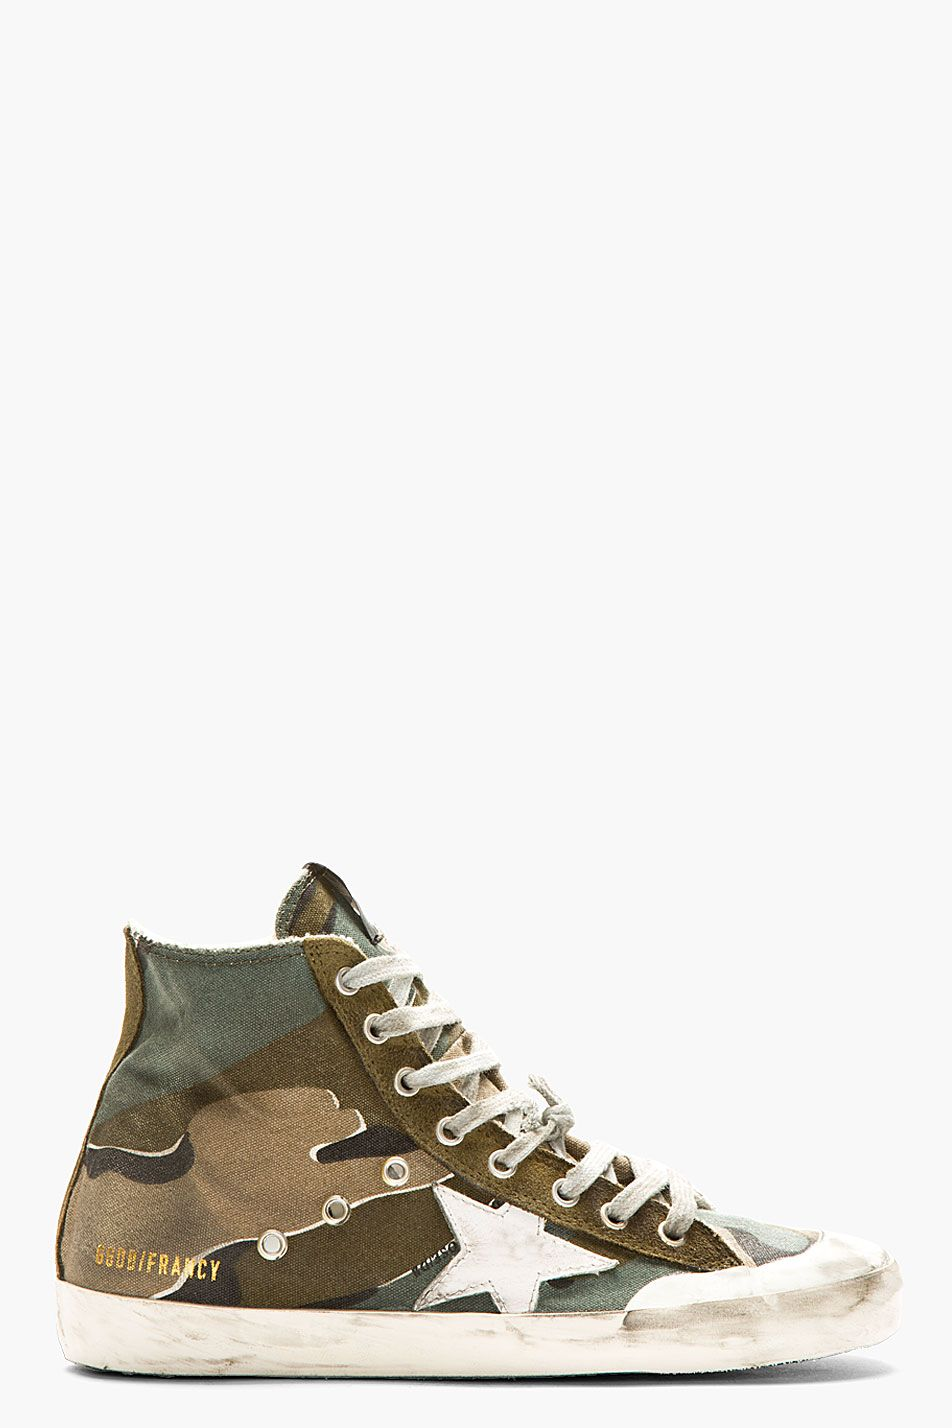 Golden Goose Green Camouflage Francy High Top Sneakers Exclusive Shoes High End Mens Shoes Sneakers Fashion